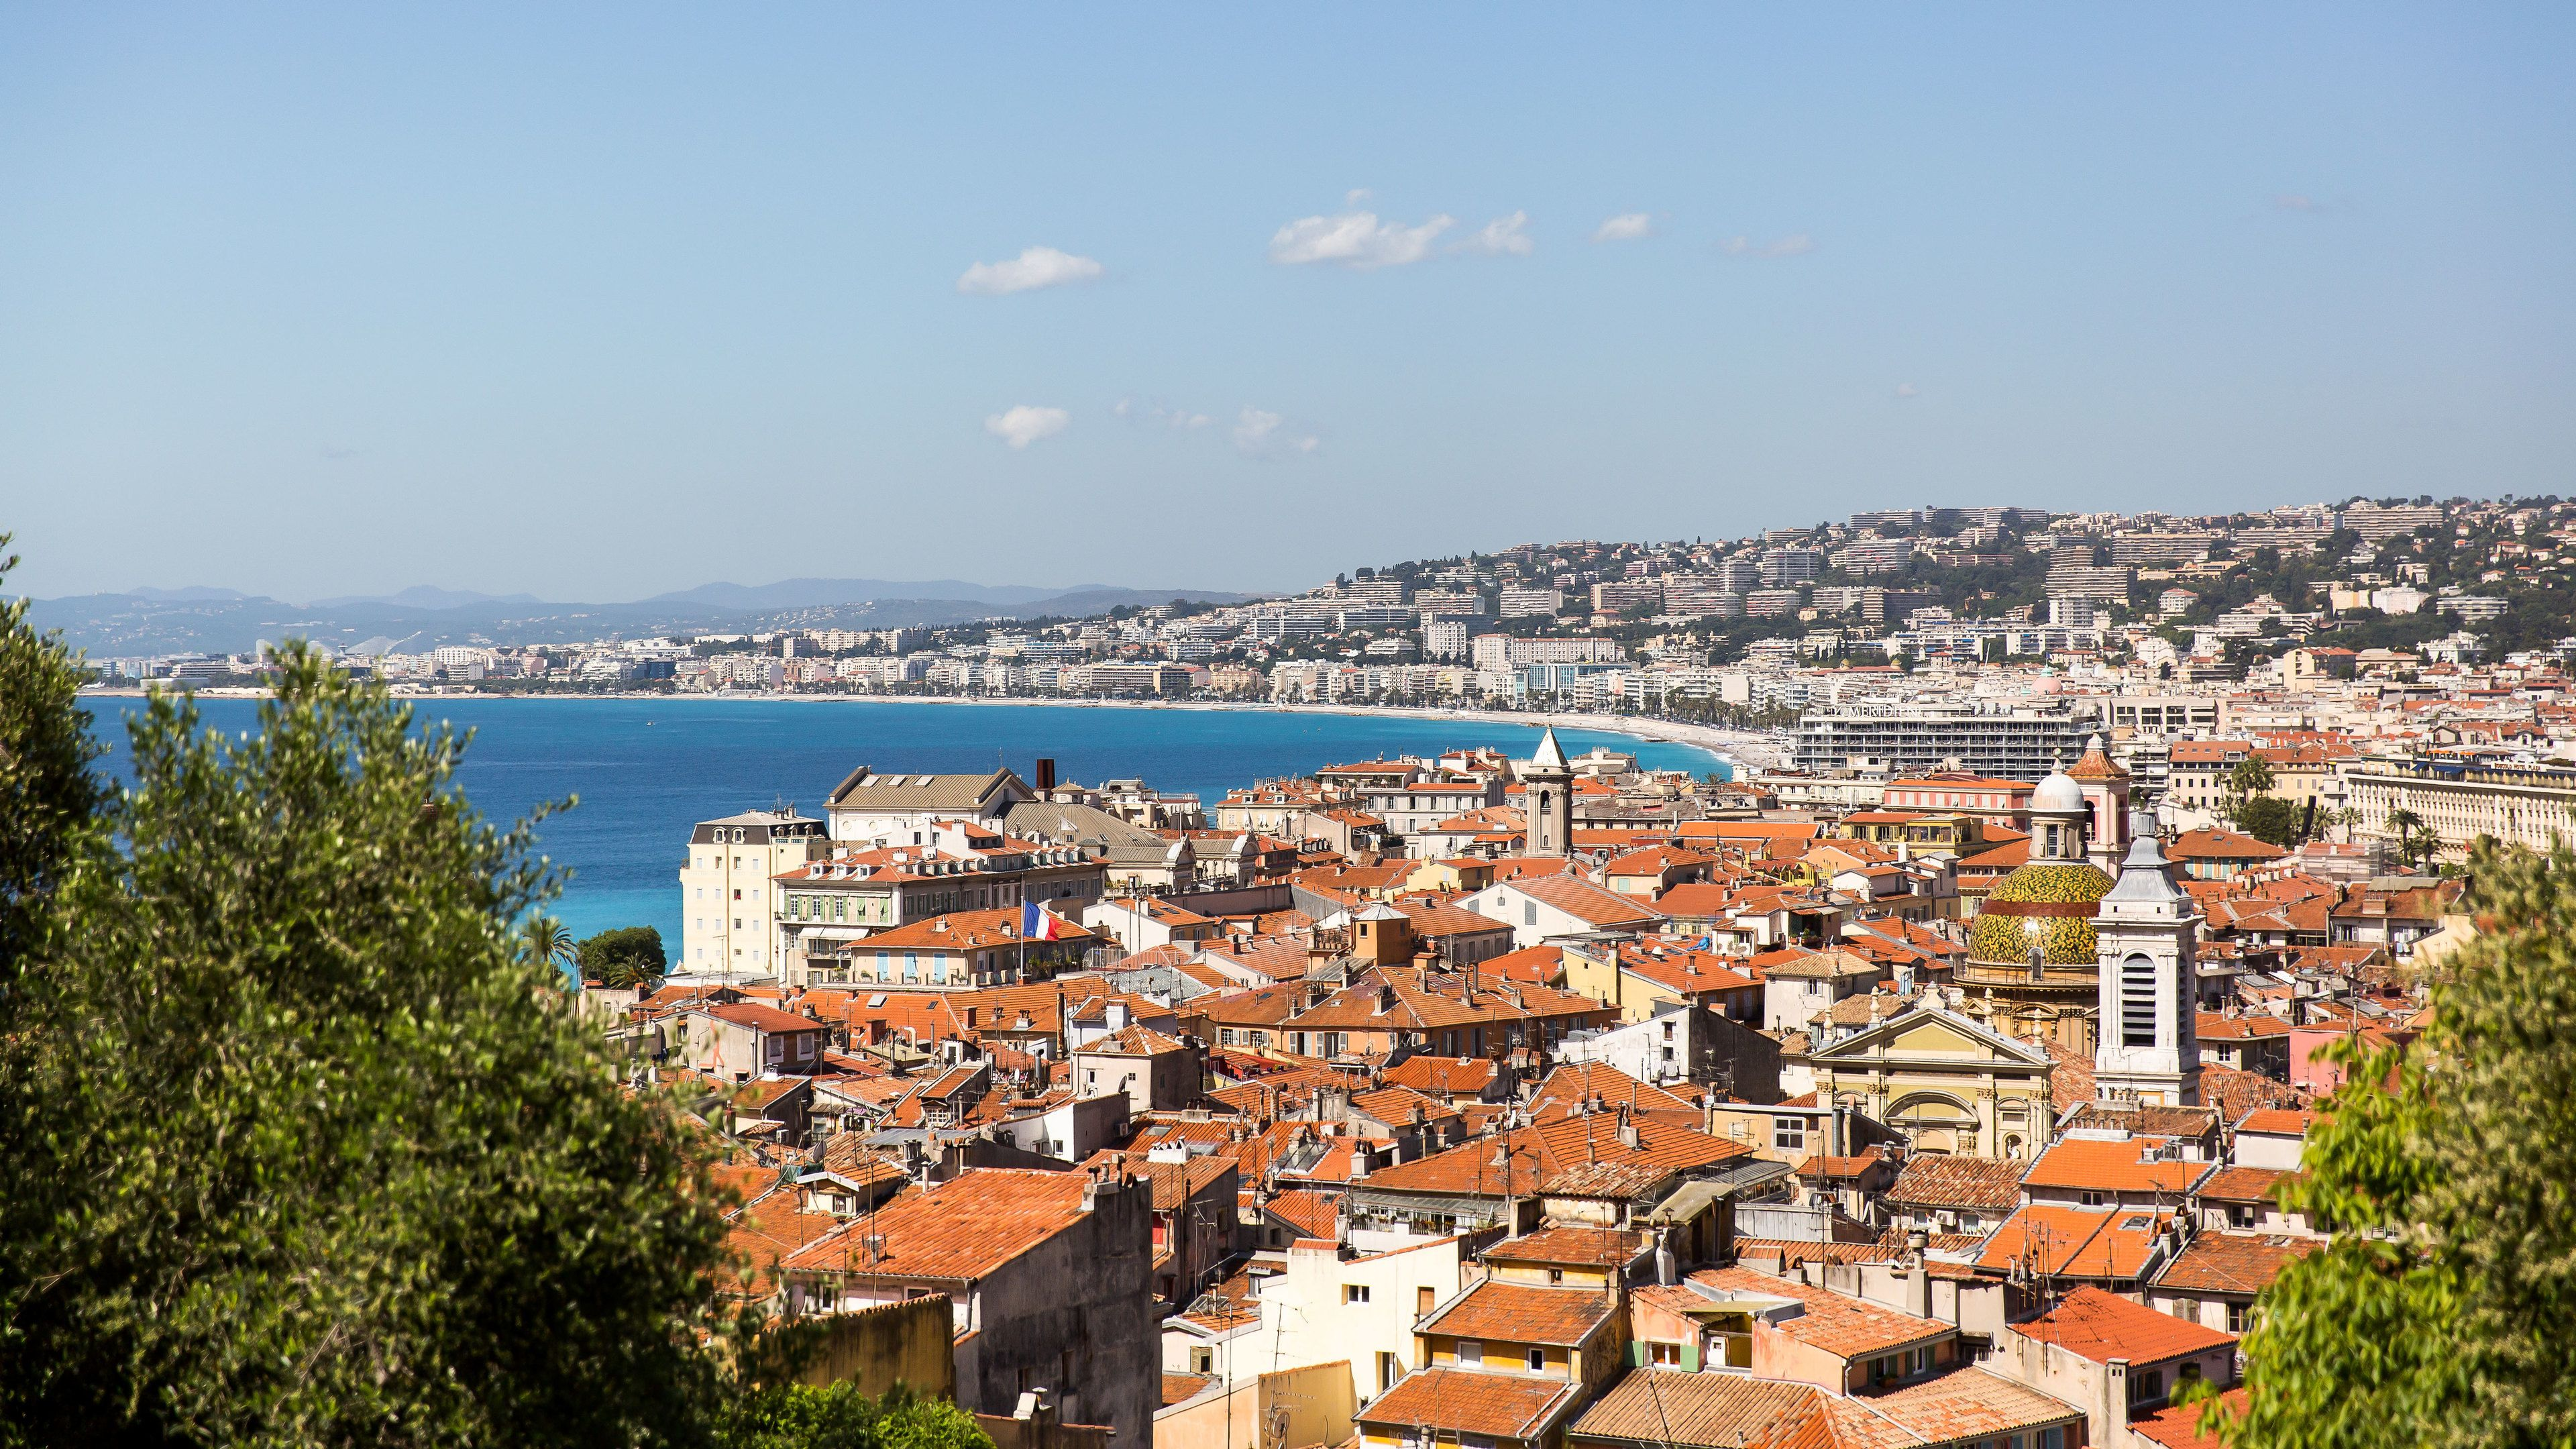 View of the rooftops of Nice in the French Riviera